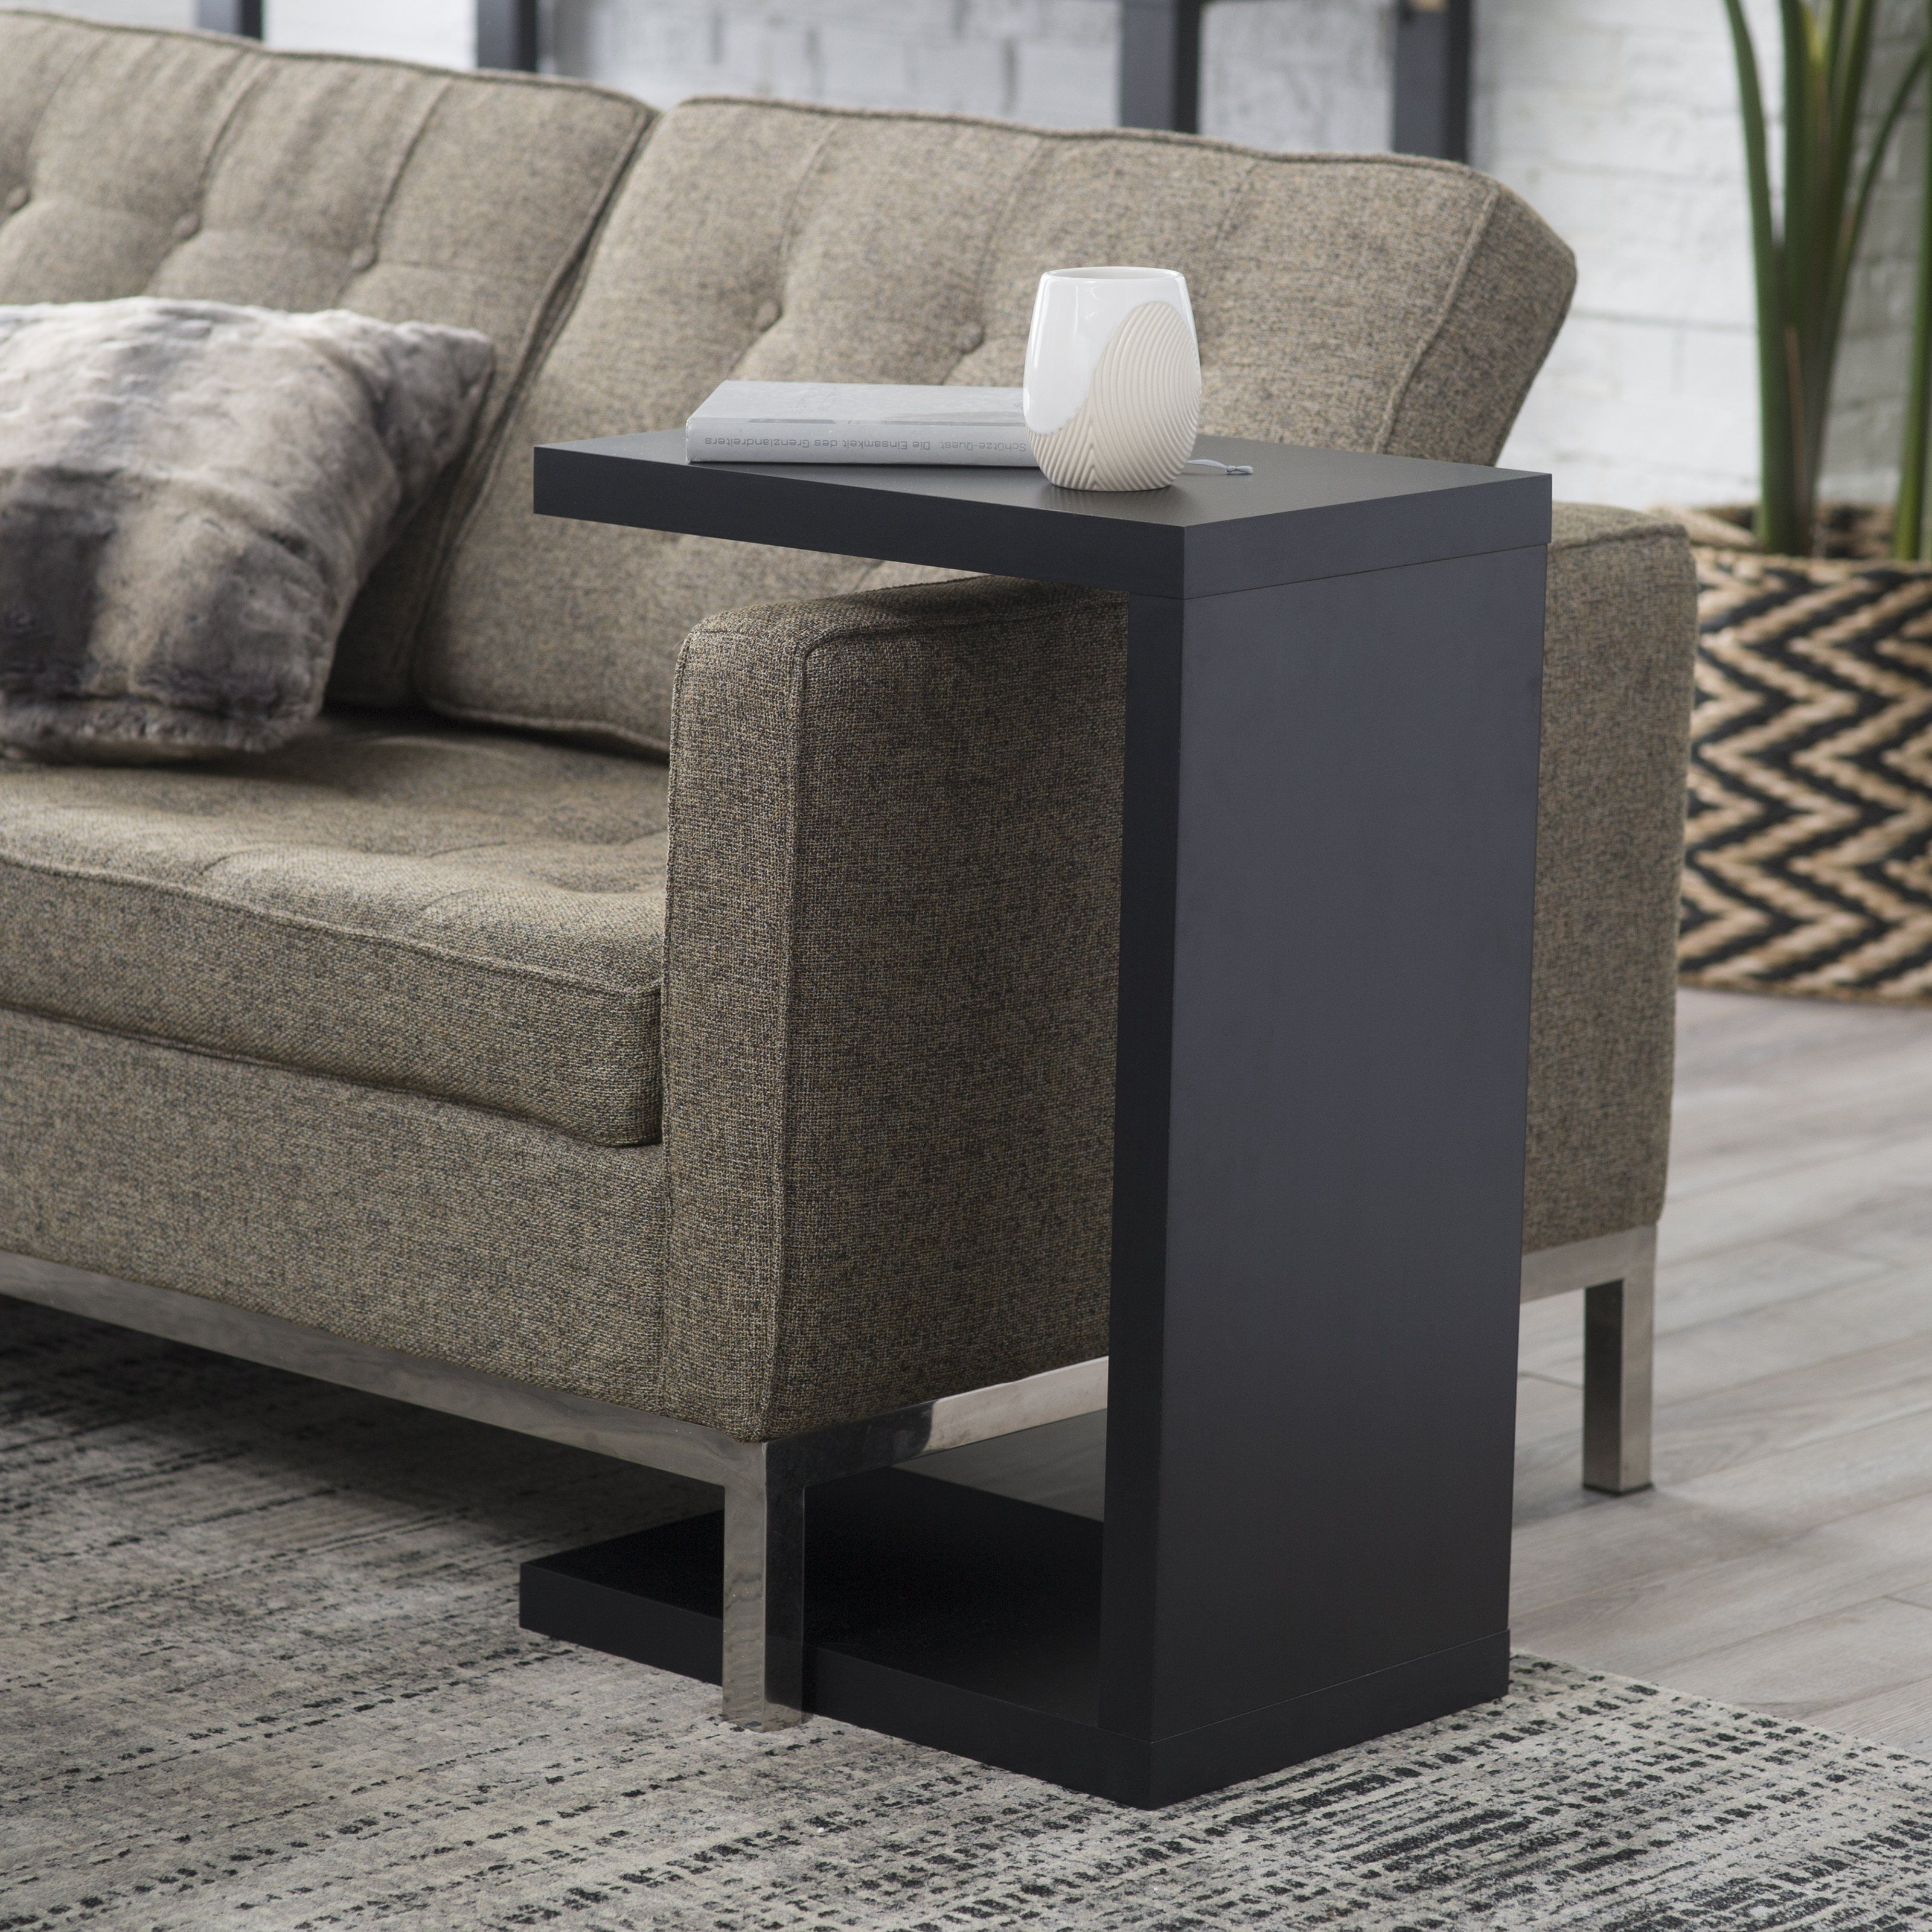 Swell Finley Home Hudson C End Table End Tables At Hayneedle Pdpeps Interior Chair Design Pdpepsorg